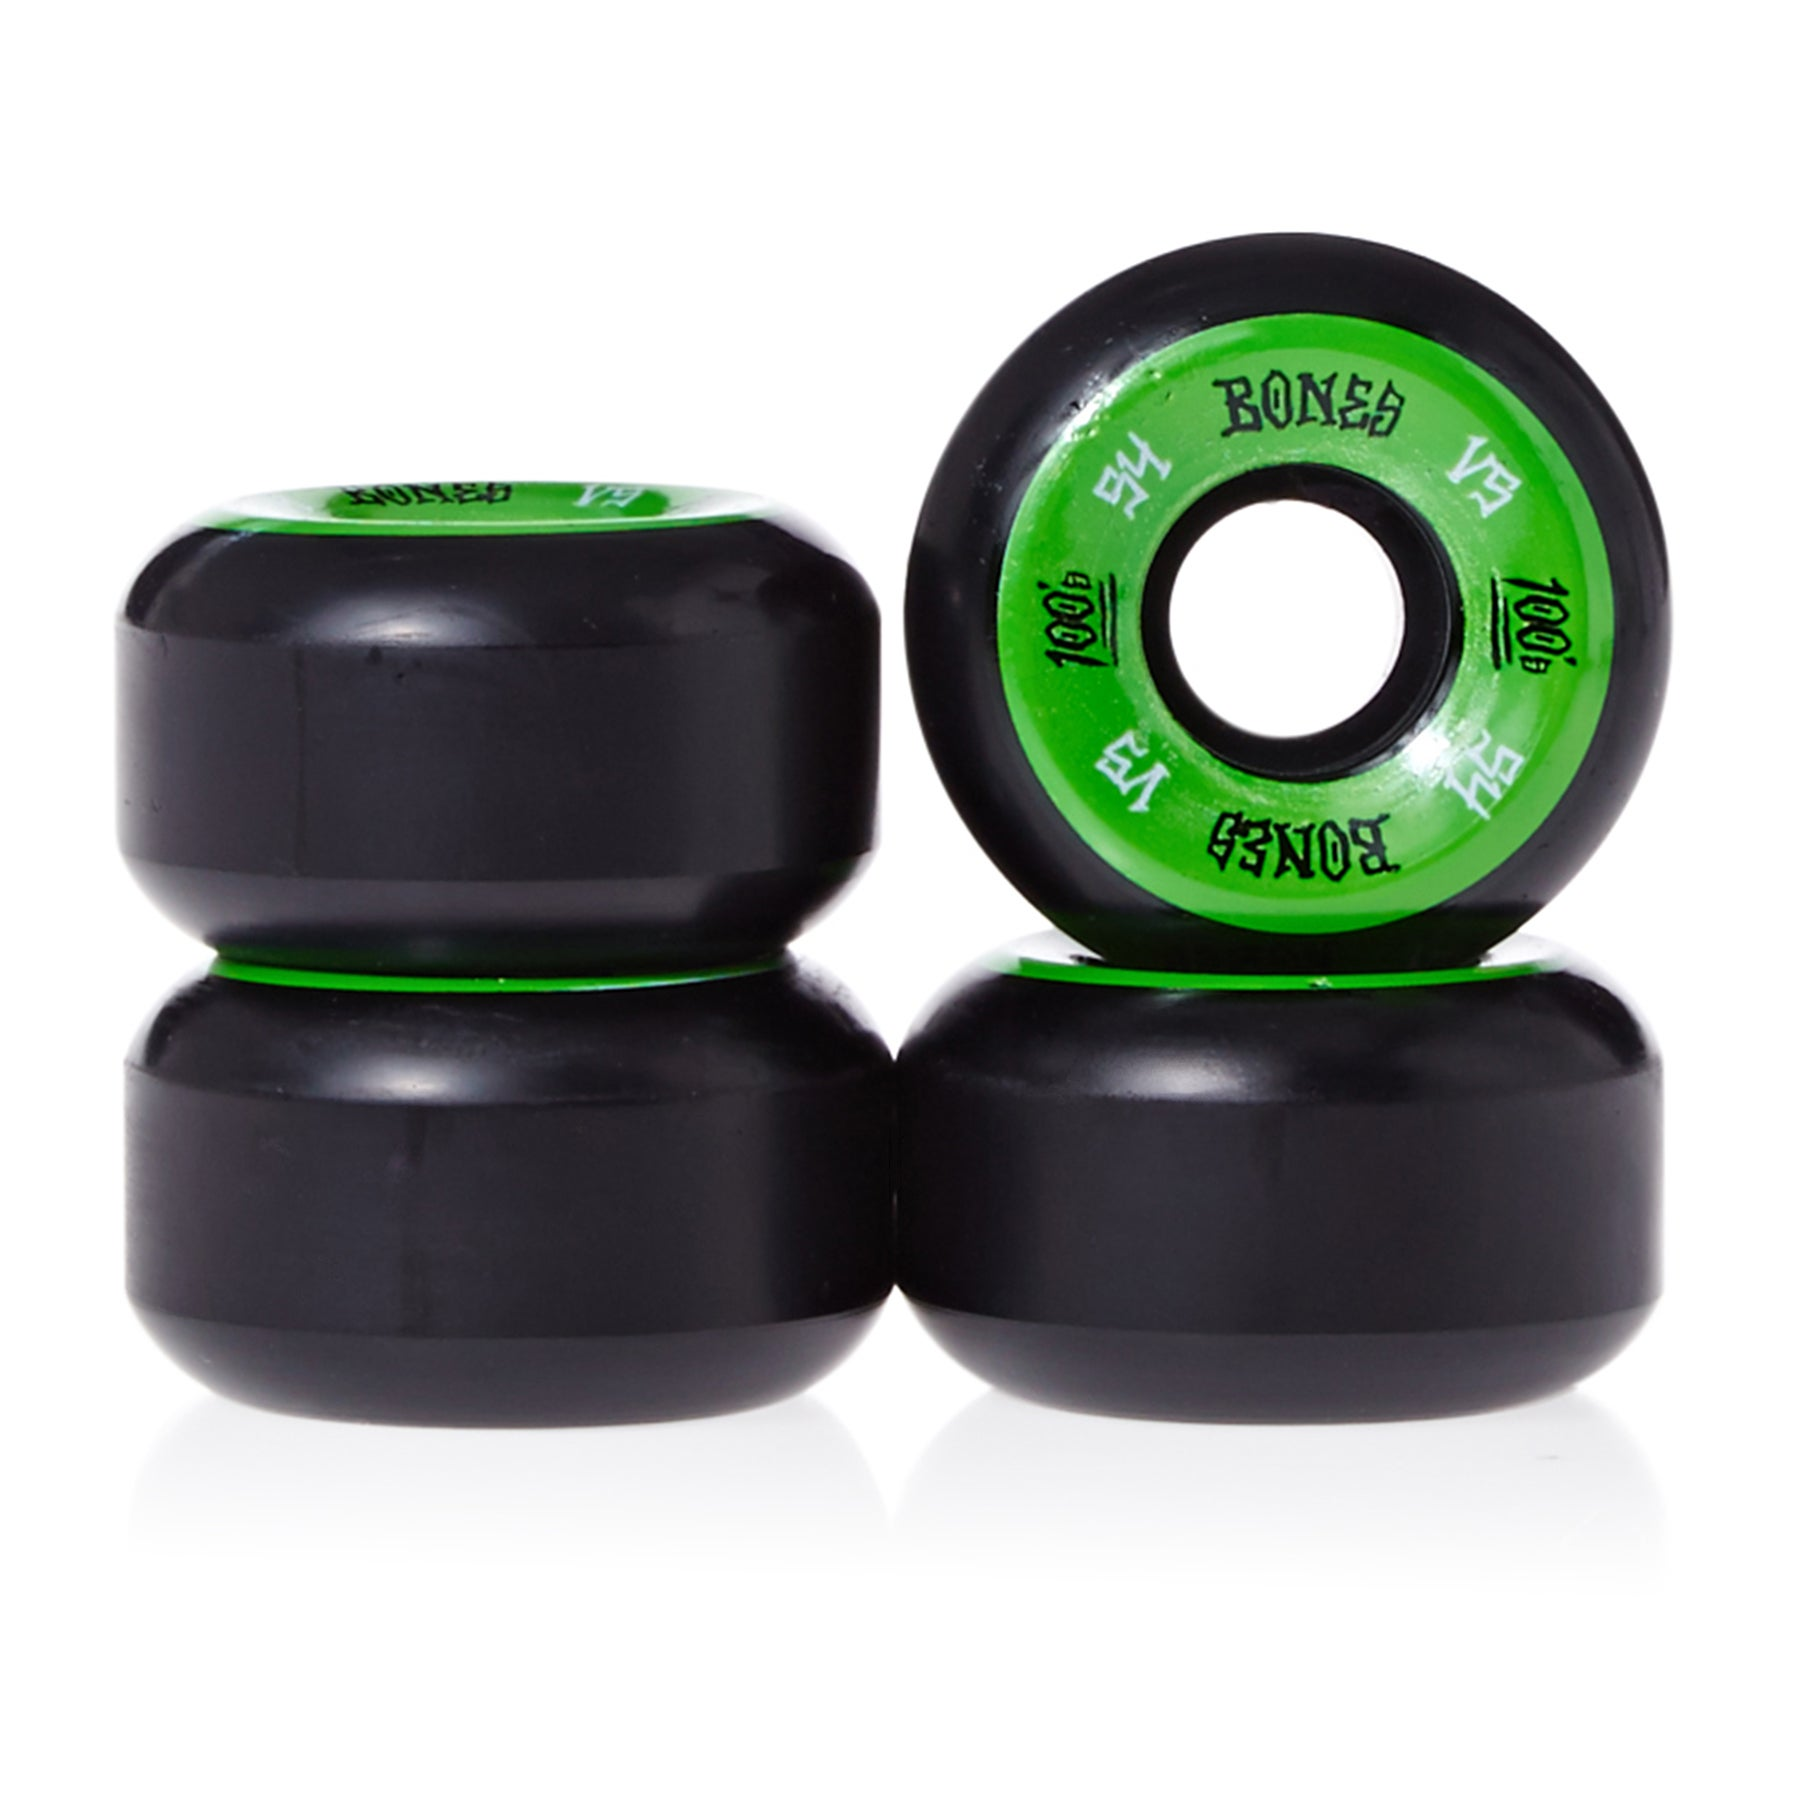 Bones 100's #1 V5 54 Mm Skateboard Wheel - Black